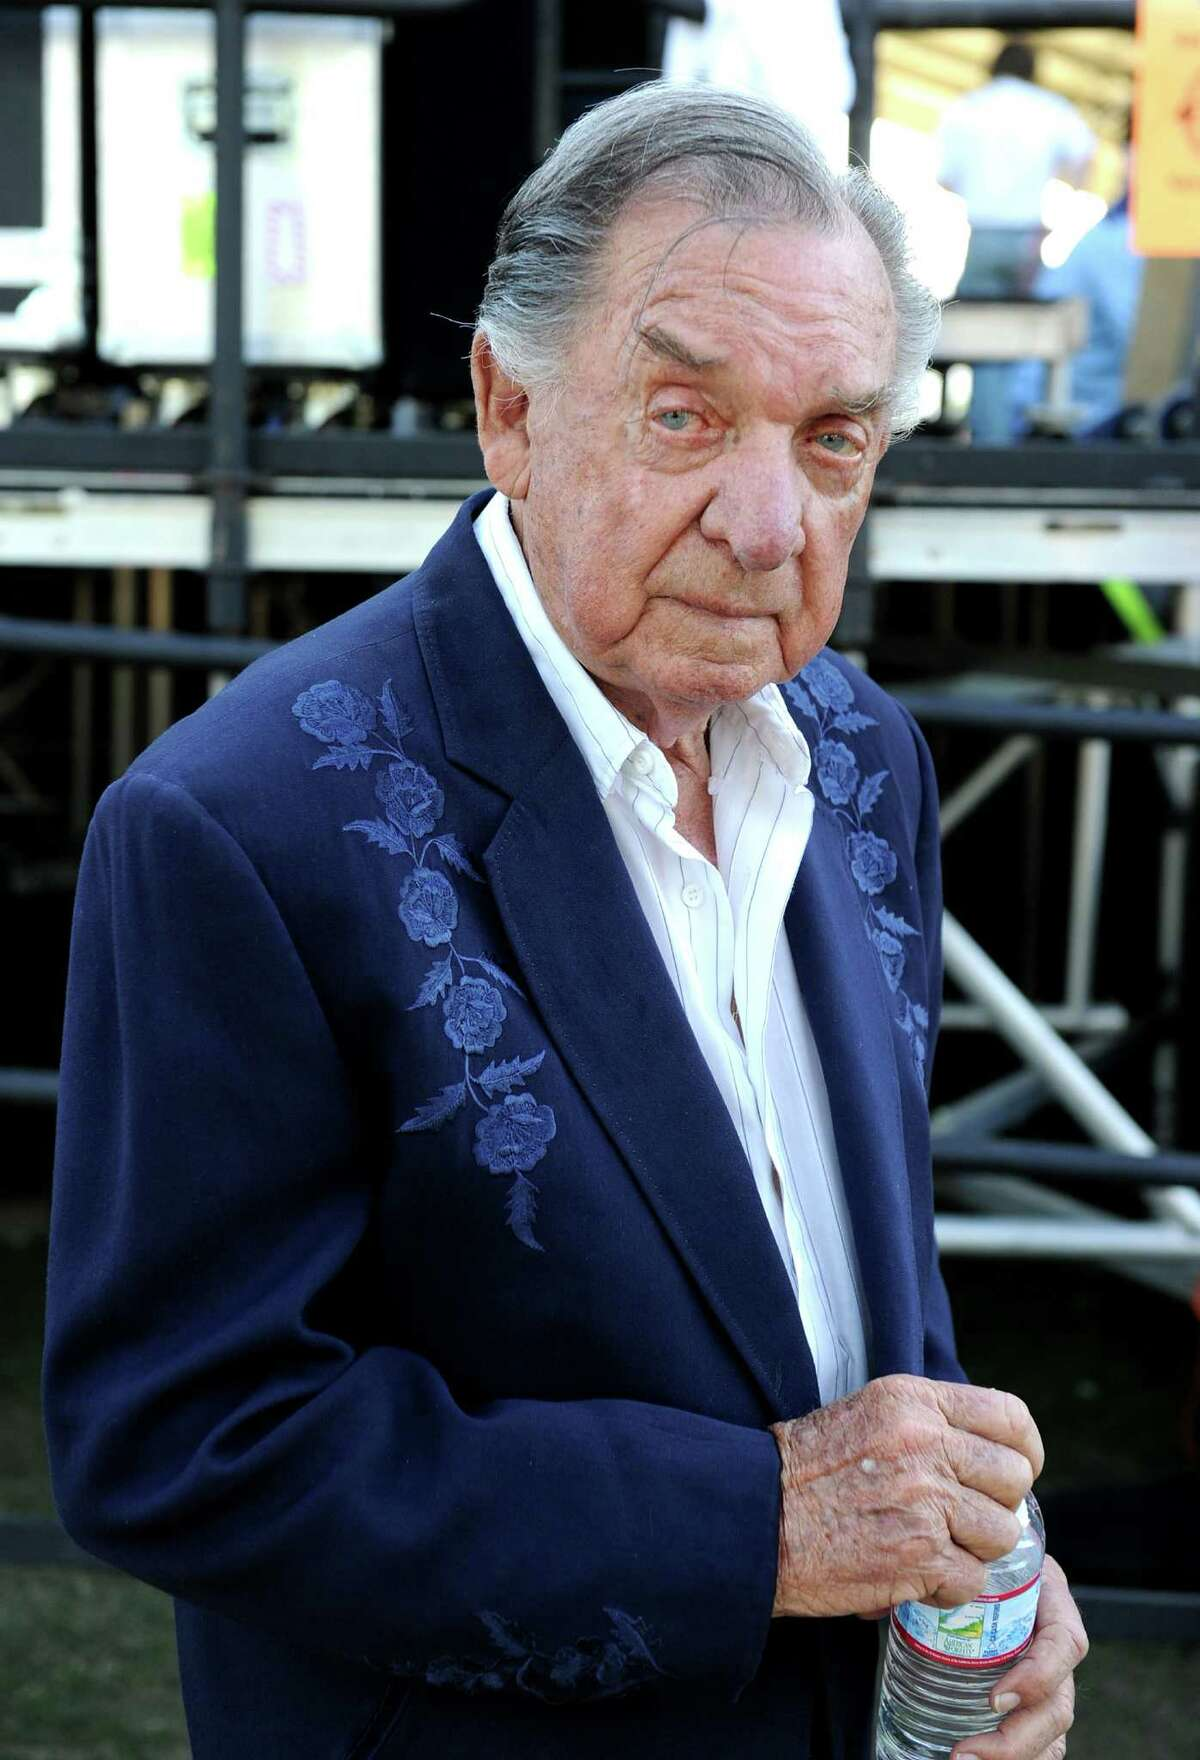 Musician Ray Price poses backstage during day 1 of Stagecoach: California's Country Music Festival 2010 held at The Empire Polo Club on April 24, 2010 in Indio, California.